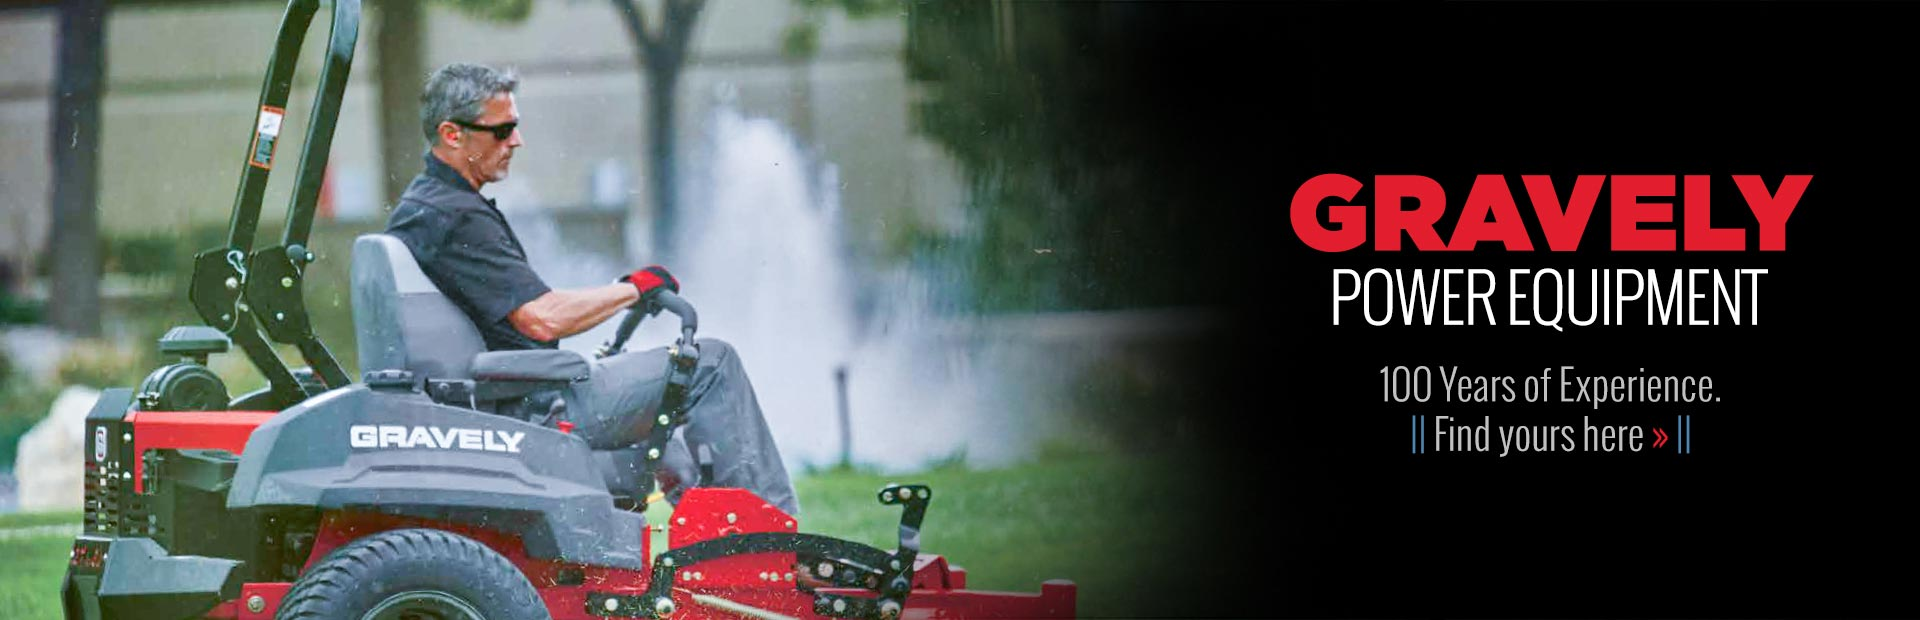 Gravely Power Equipment: Click here to view our showcase!